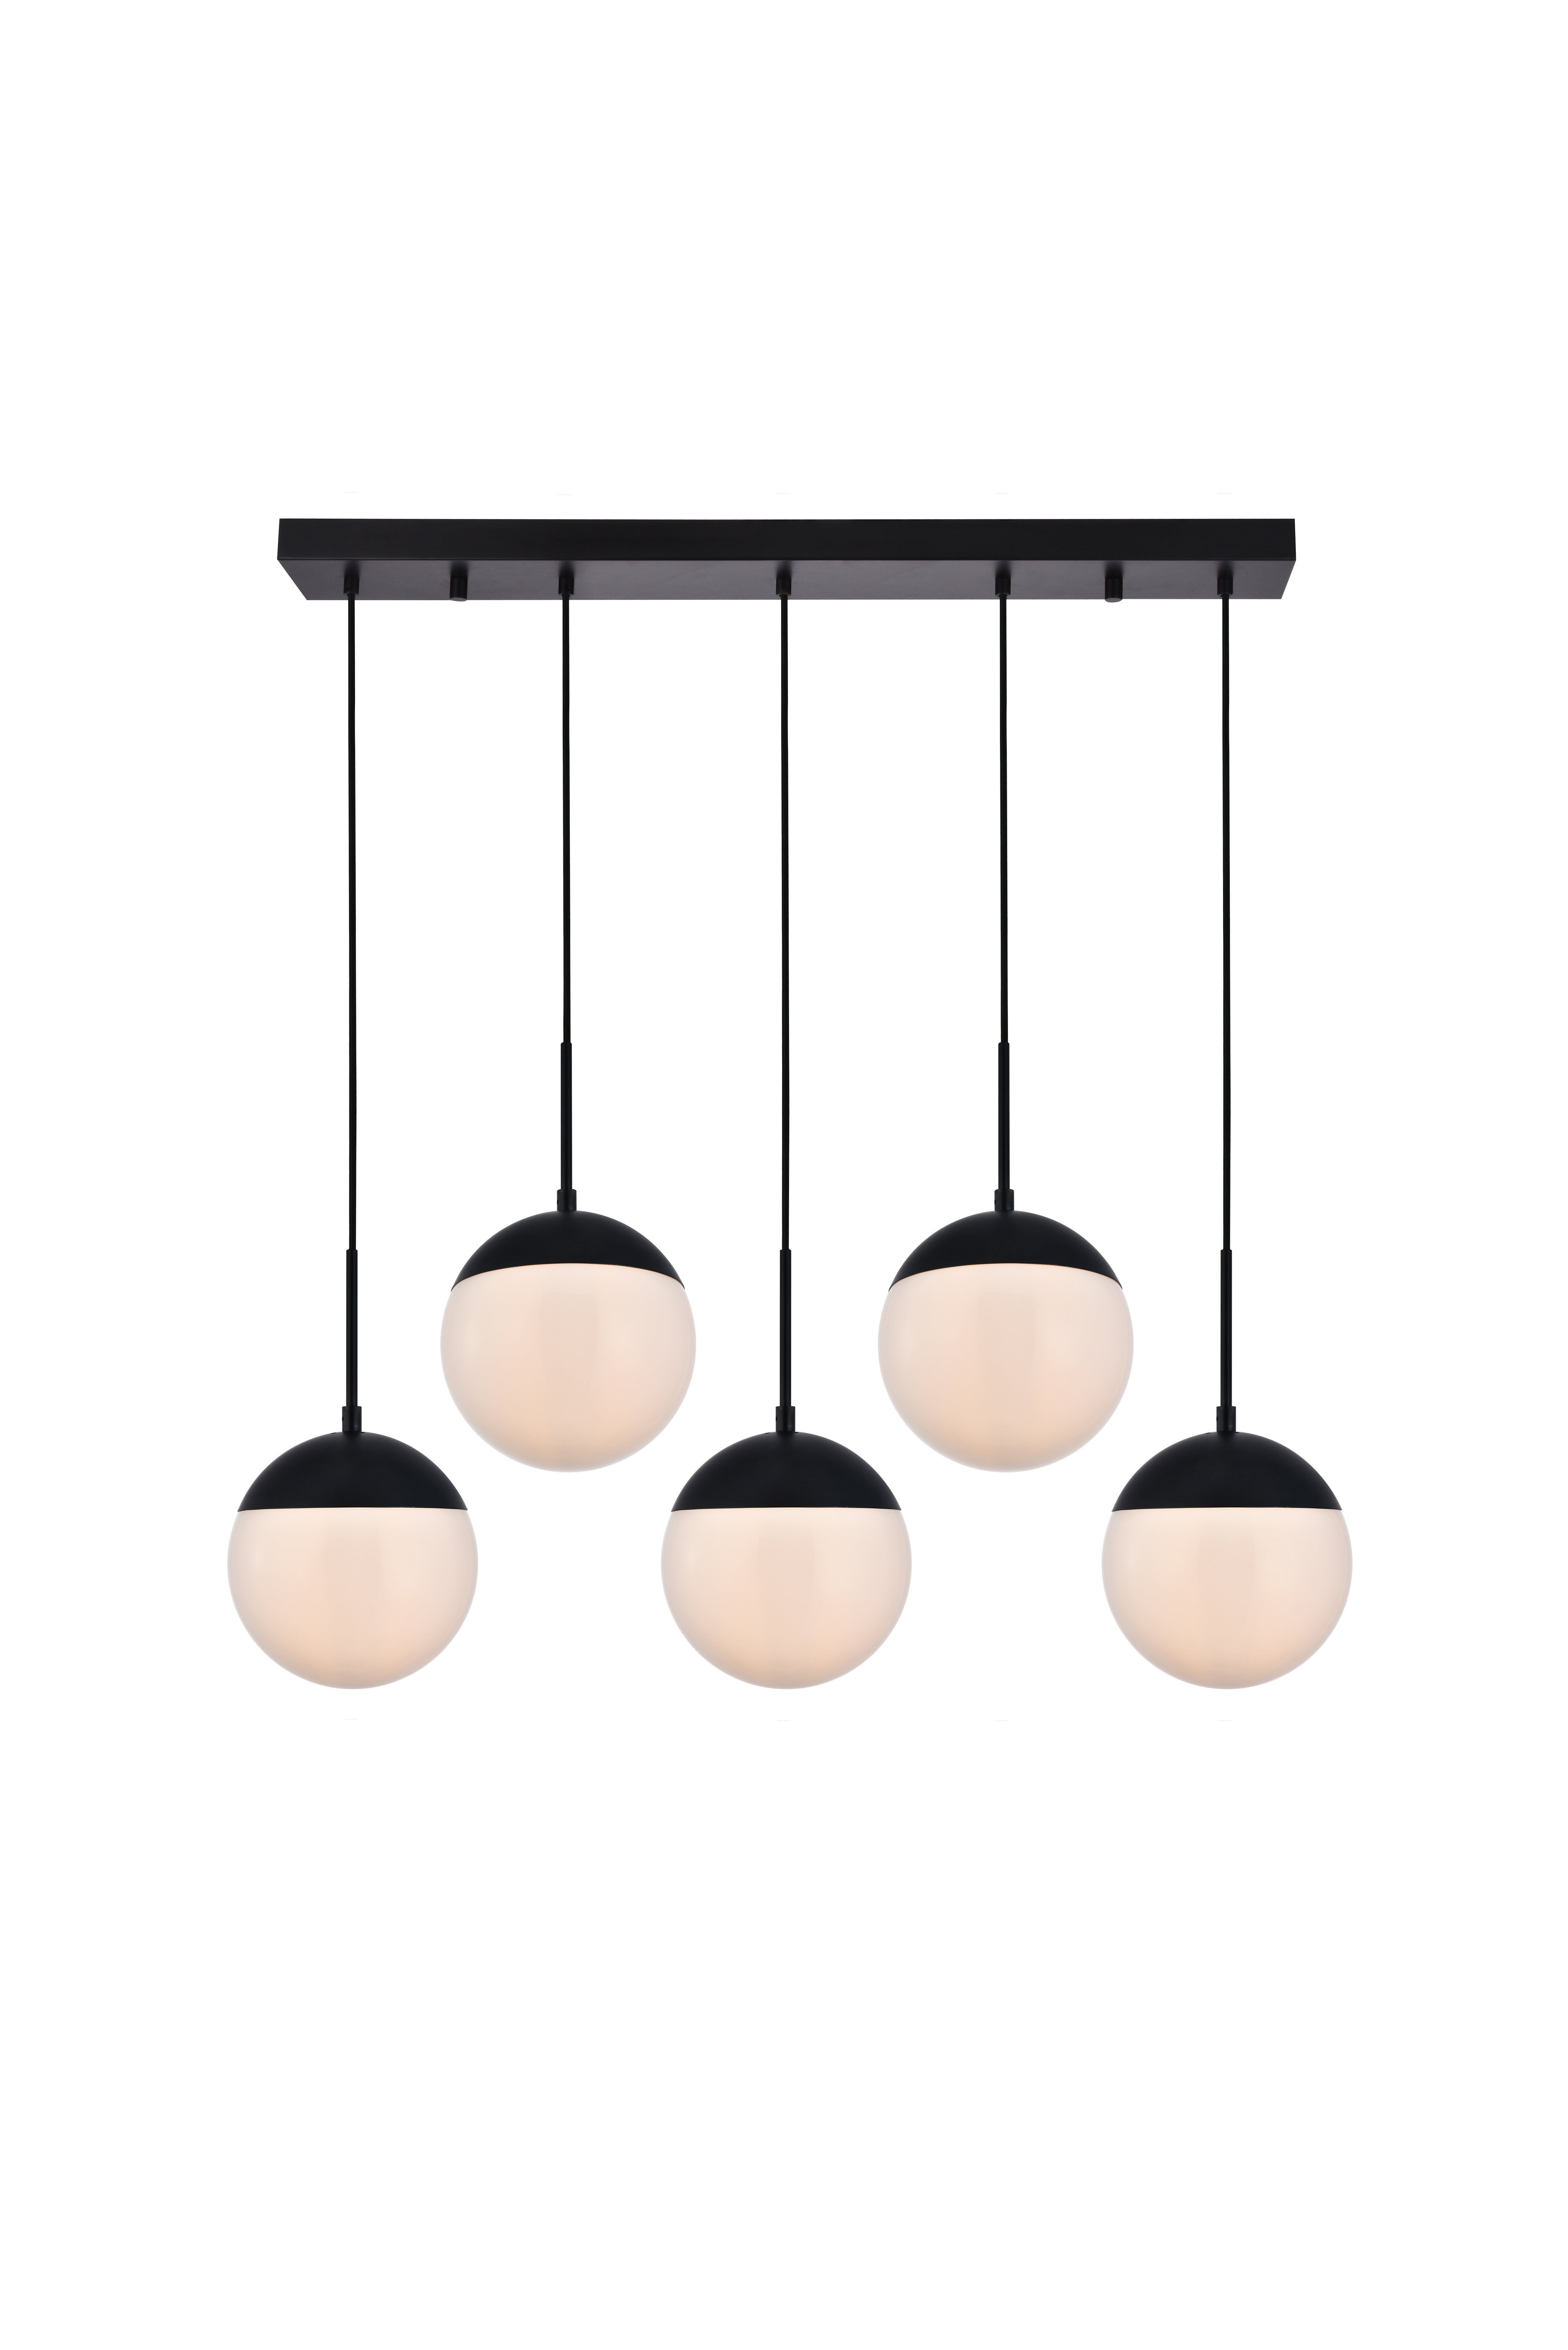 Modern Black Pendant Lighting | Allmodern For Bautista 6 Light Kitchen Island Bulb Pendants (View 23 of 30)